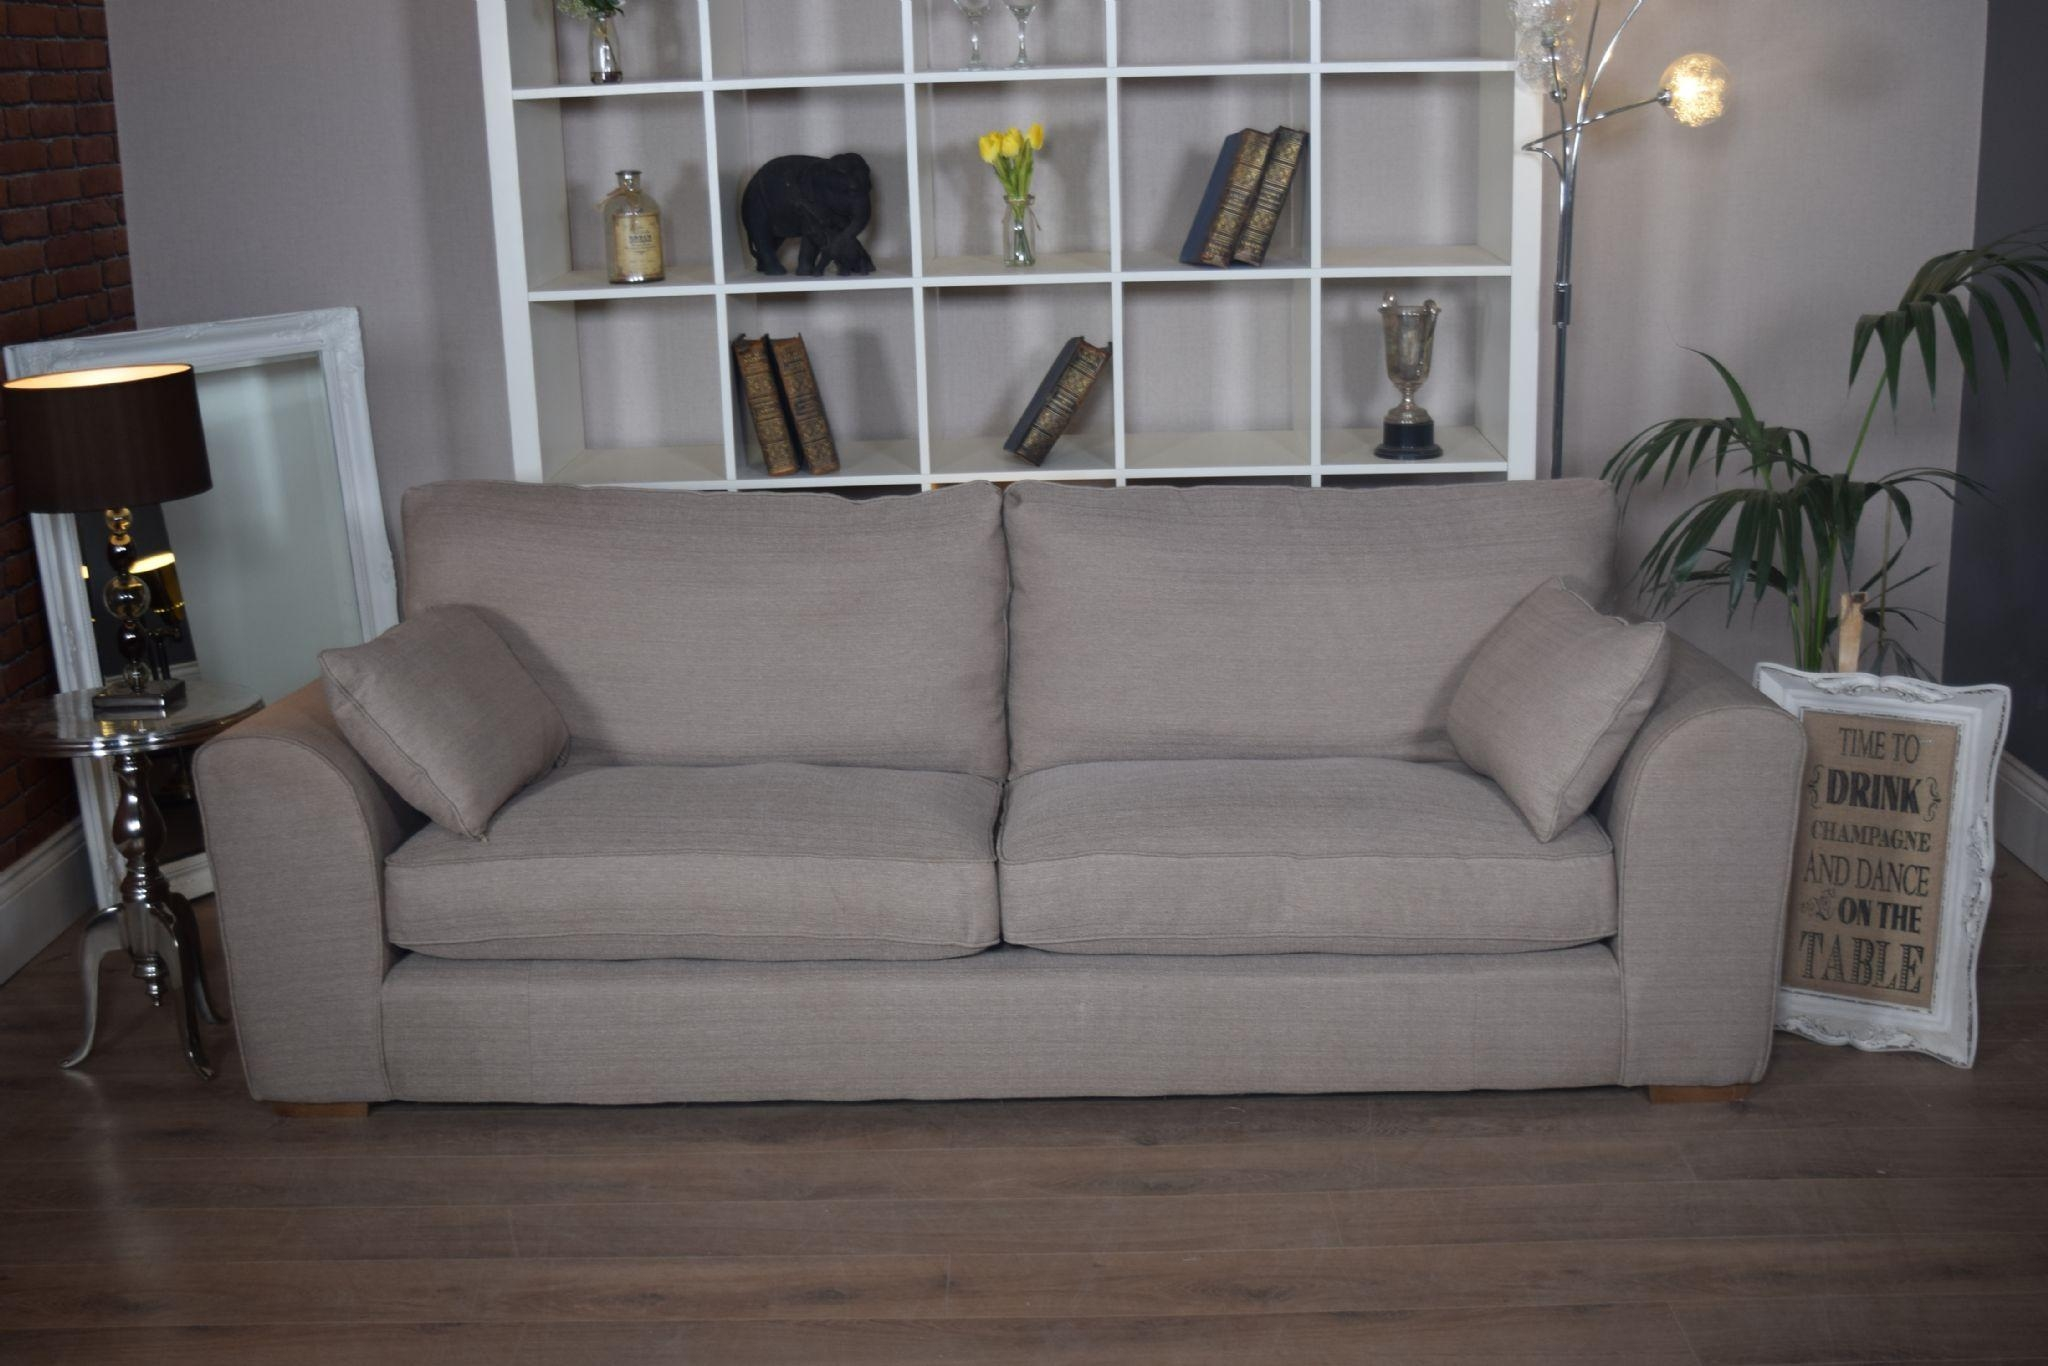 Set New Ashdown 3 Seater Sofa & Cuddle Chair Set – Beige Mink Inside 3 Seater Sofa And Cuddle Chairs (View 12 of 20)